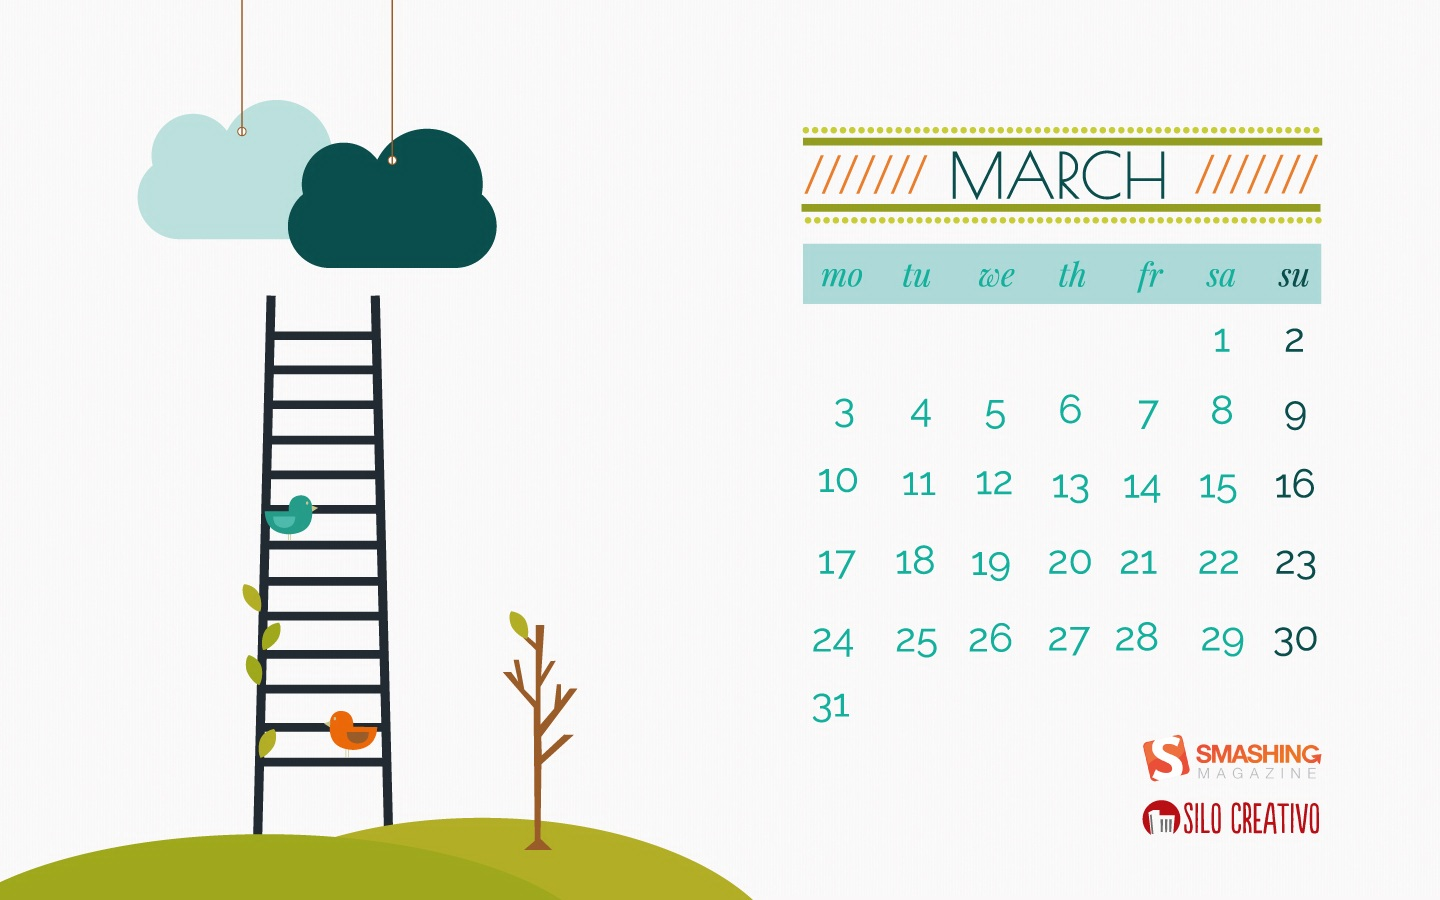 In January Calendar Wallpaper 50038